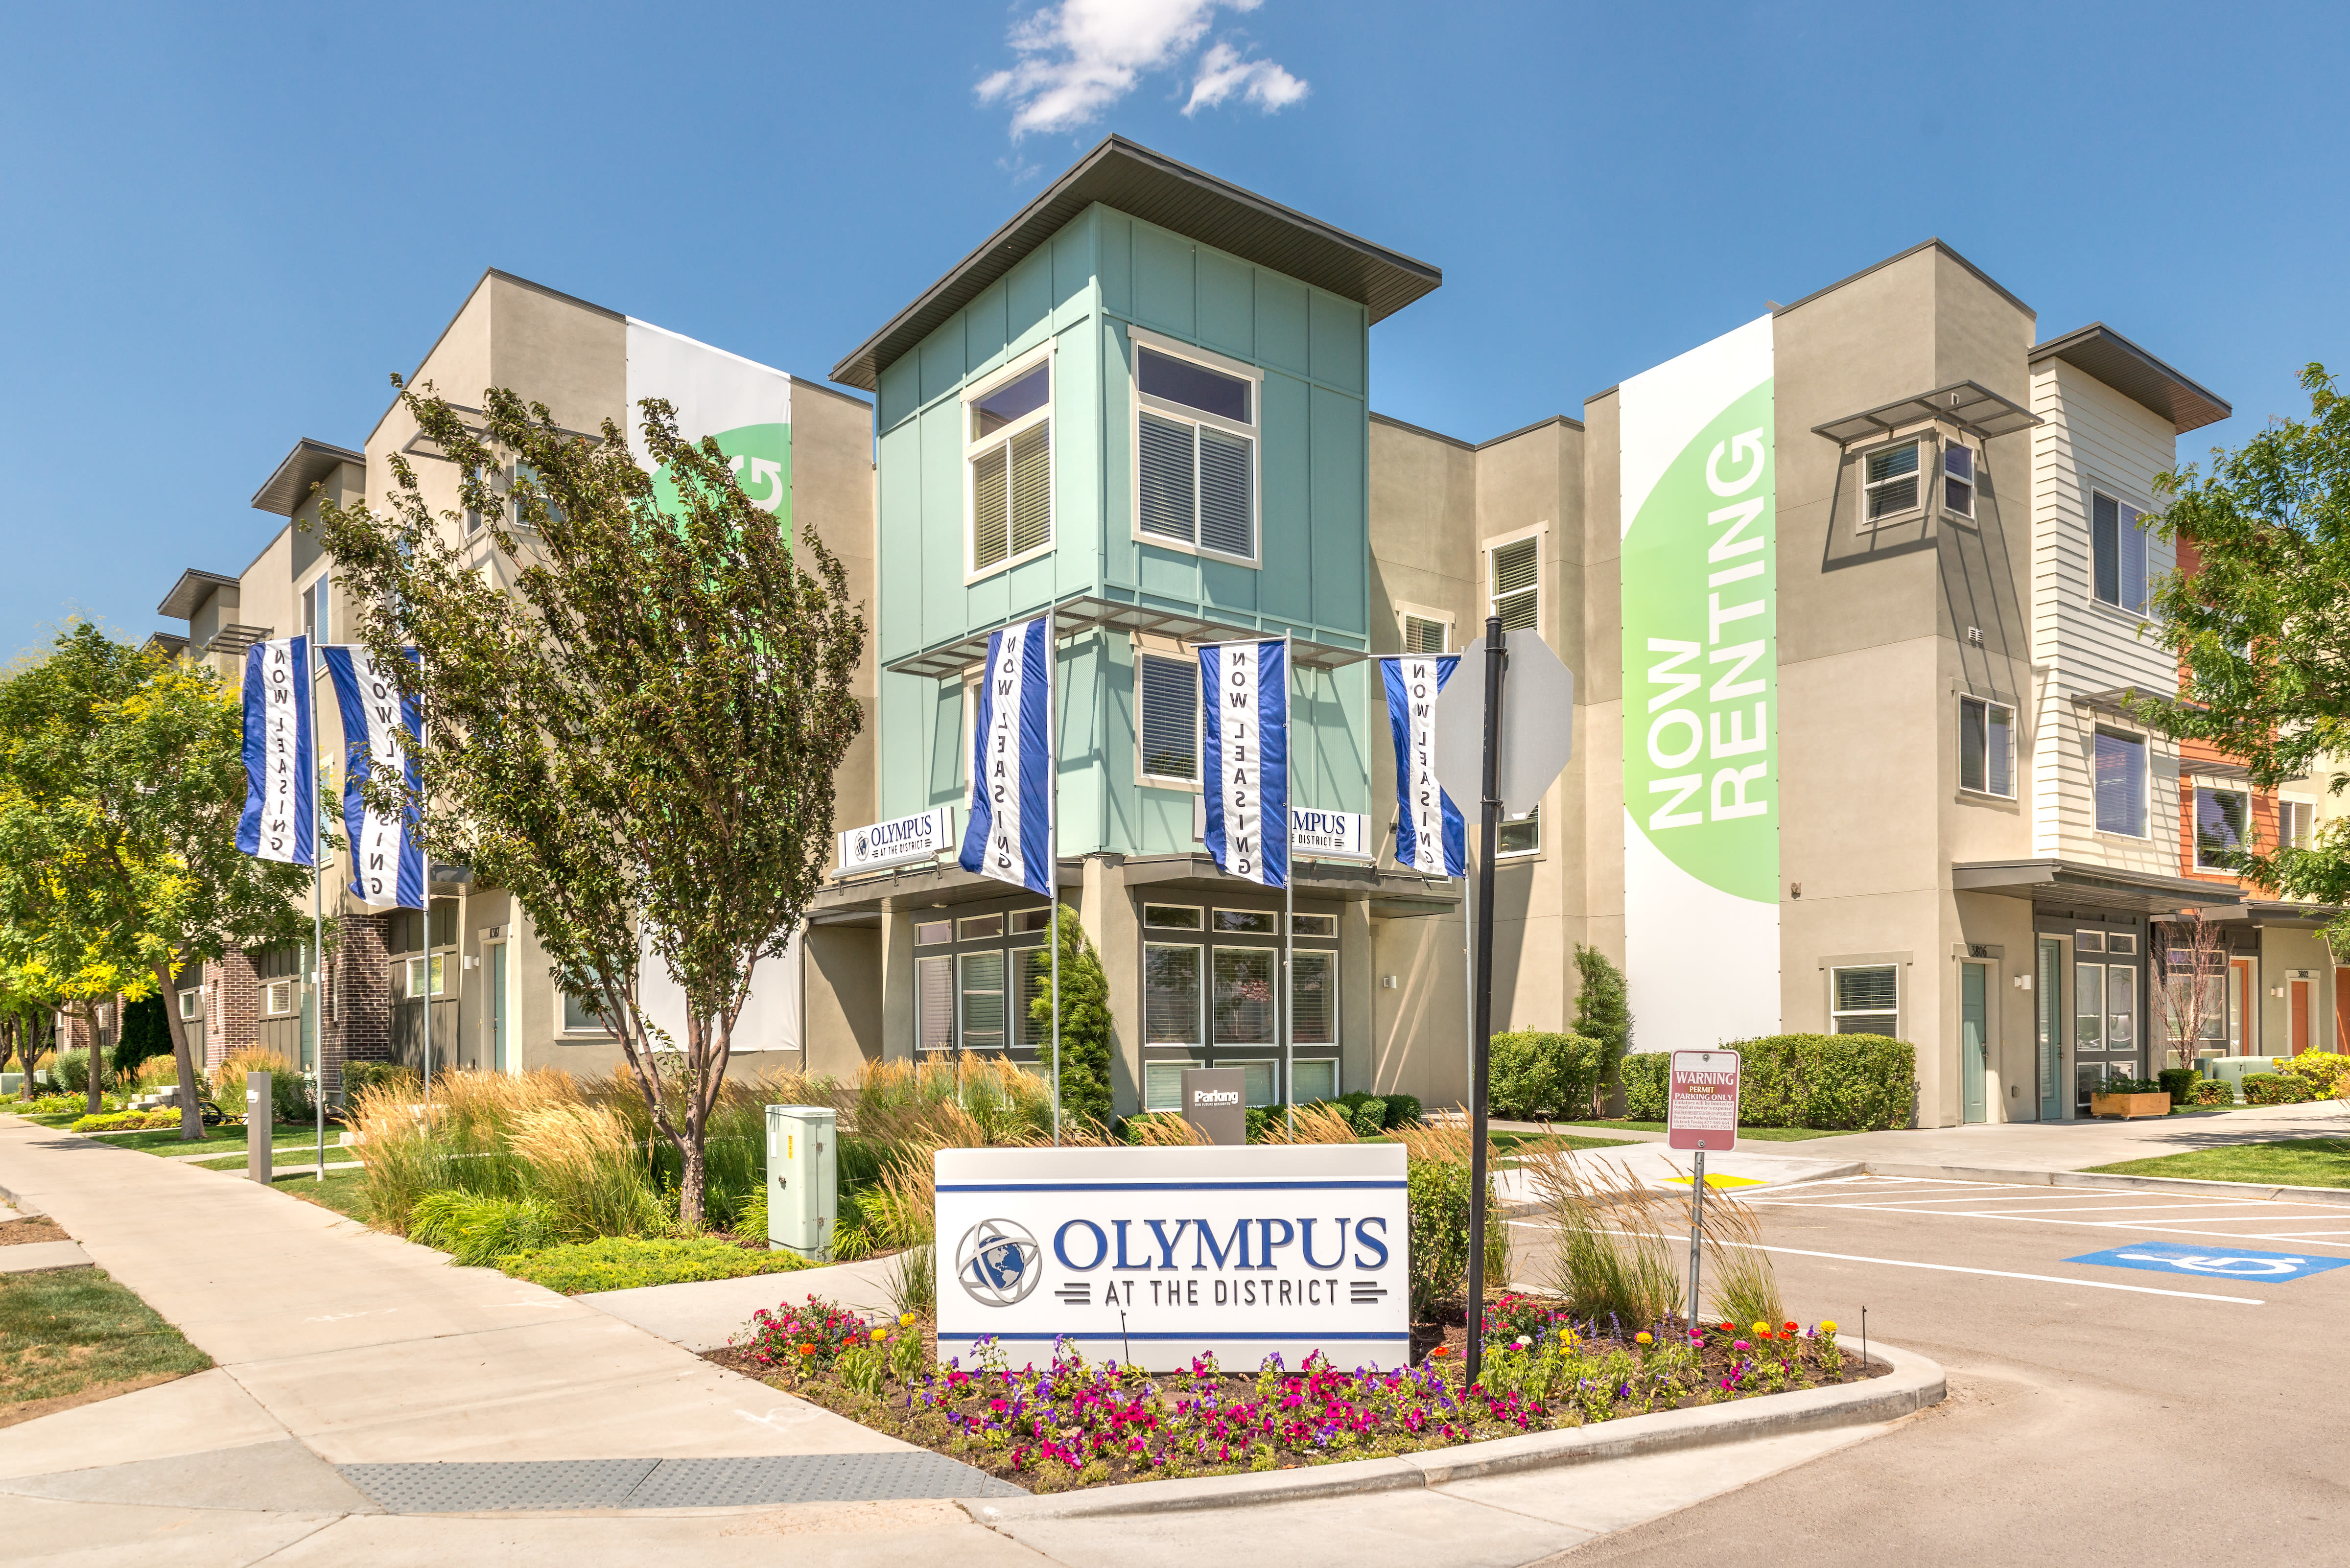 Community entrance sign at Olympus at the District in South Jordan, Utah